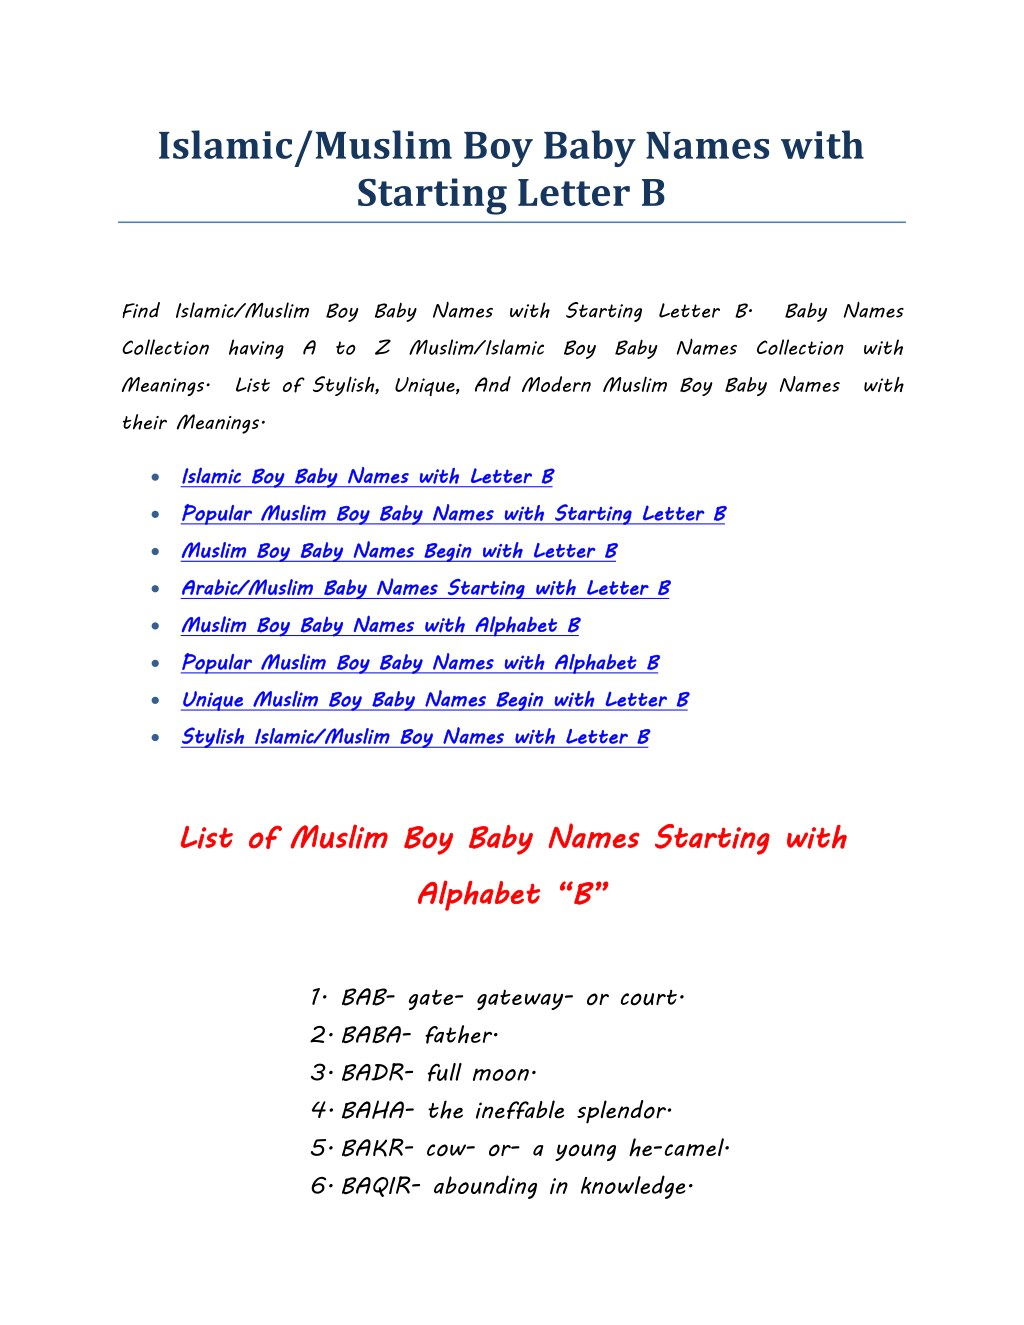 PPT - Islamic/Muslim Boy Baby Names with Starting Letter B PowerPoint  Presentation - ID:7881291